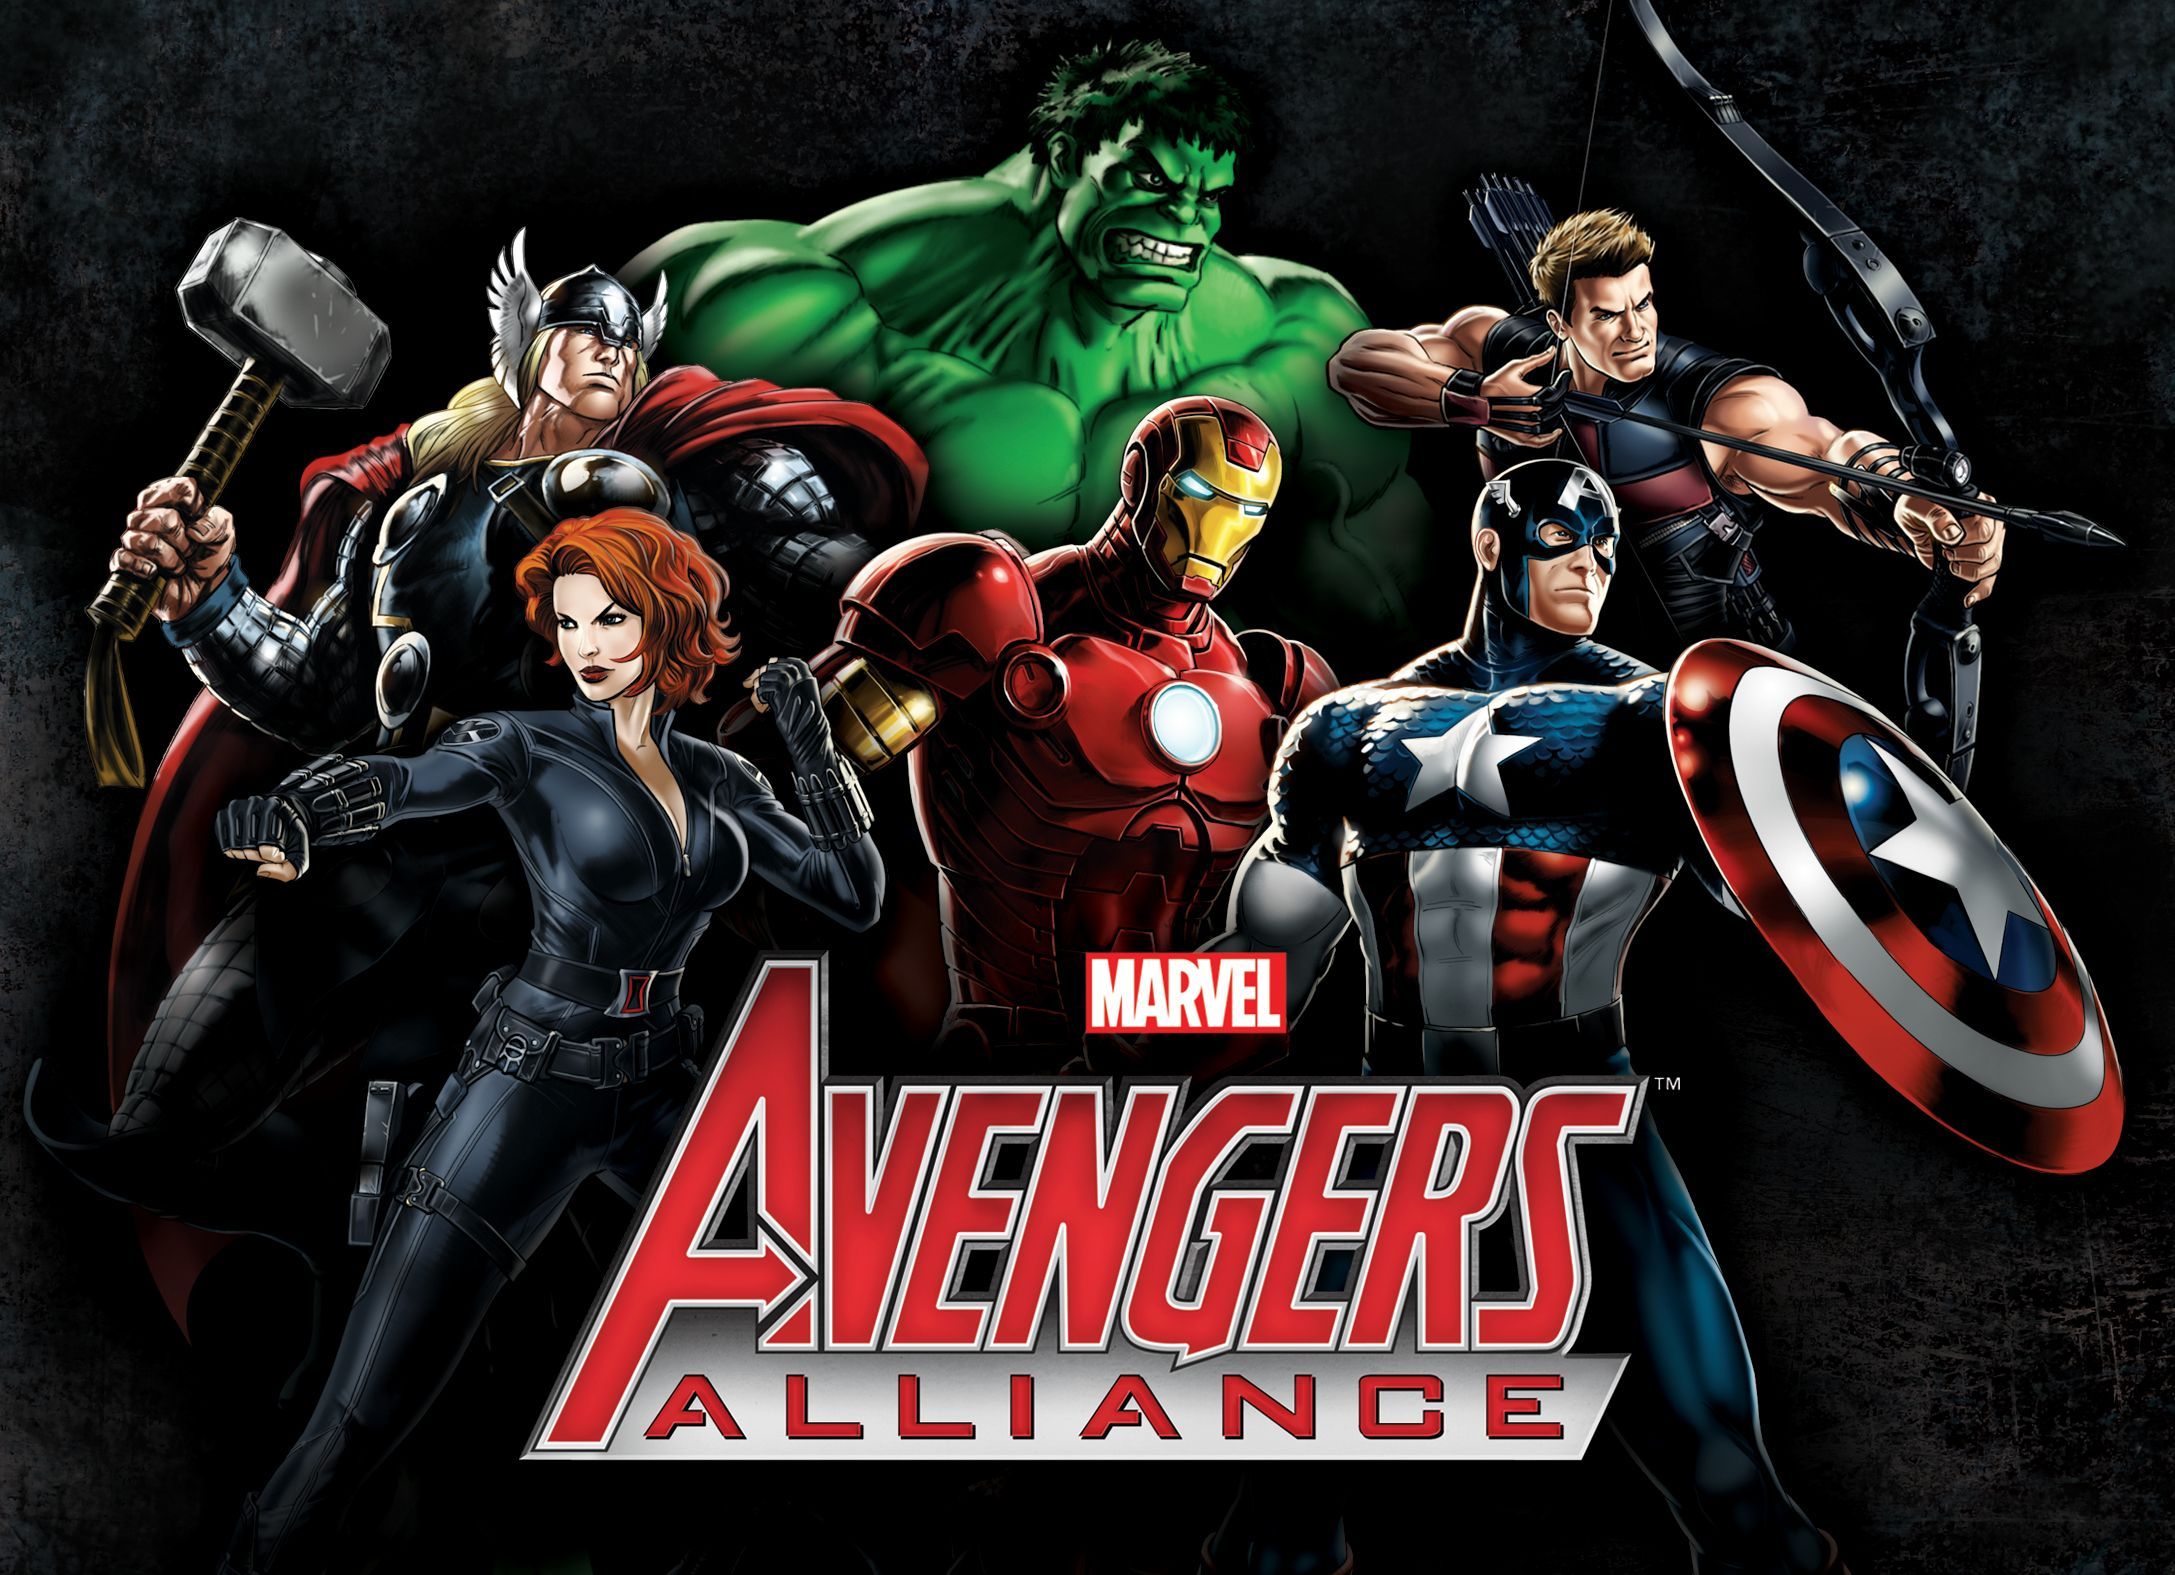 marvel avengers alliance game is now available for windows phone 8 devices marvel avengers